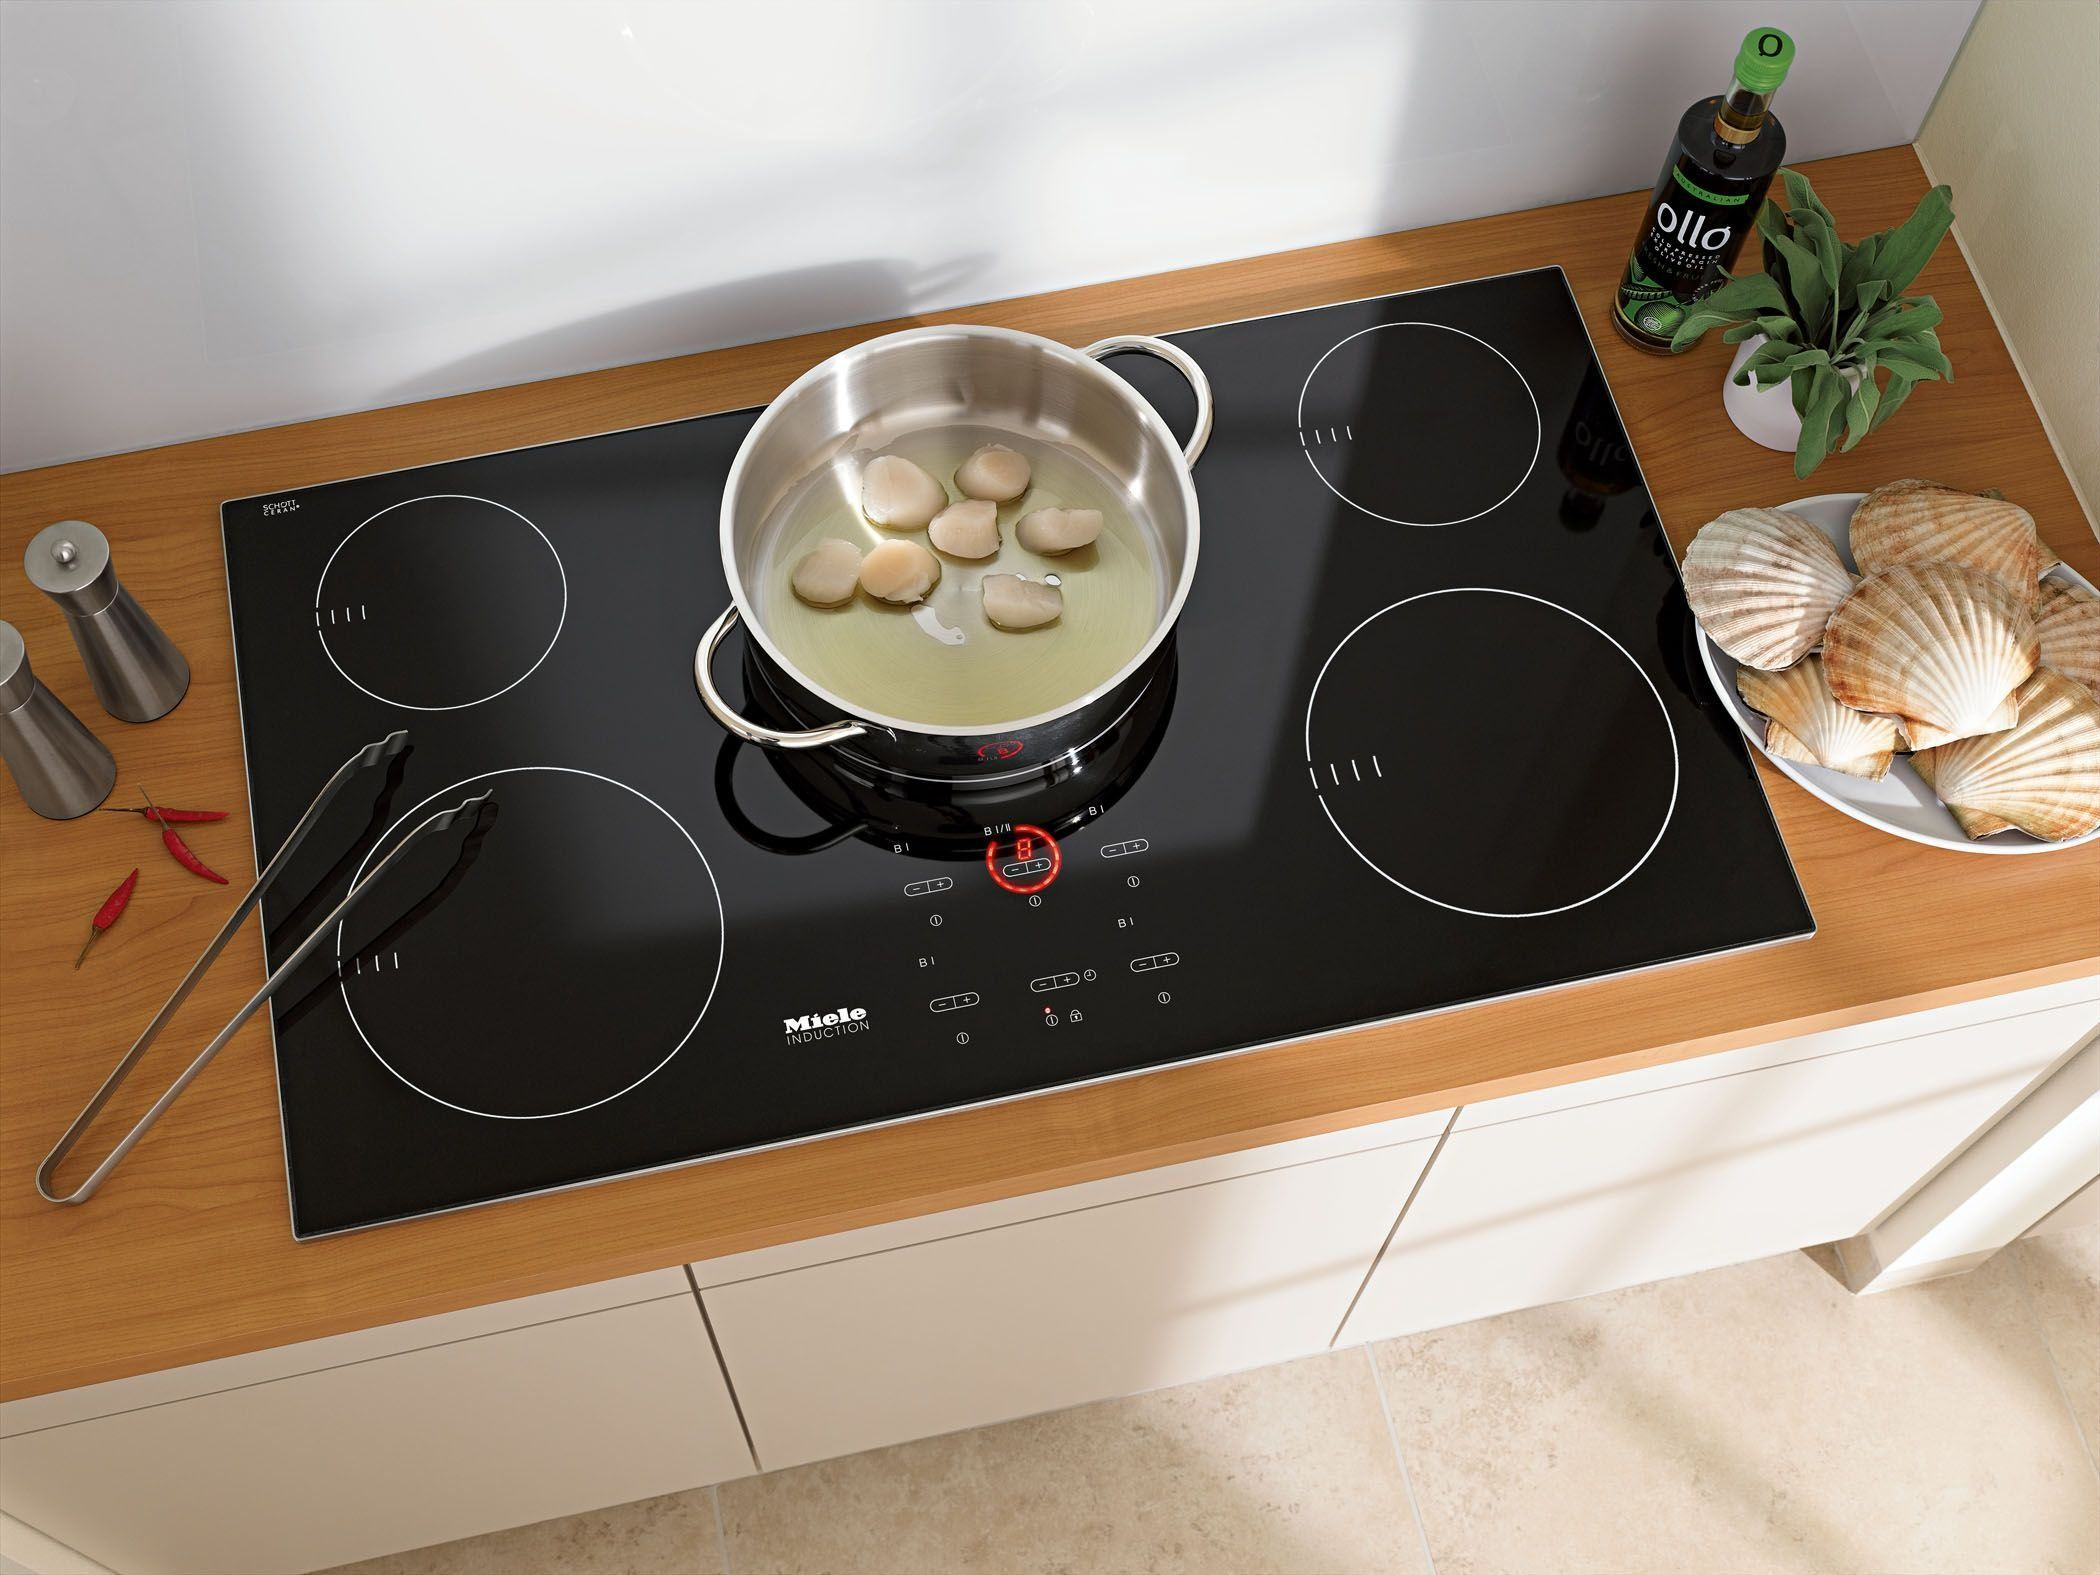 Modern Electric Cooktop Stove An Electric Cooktop Stove Is A